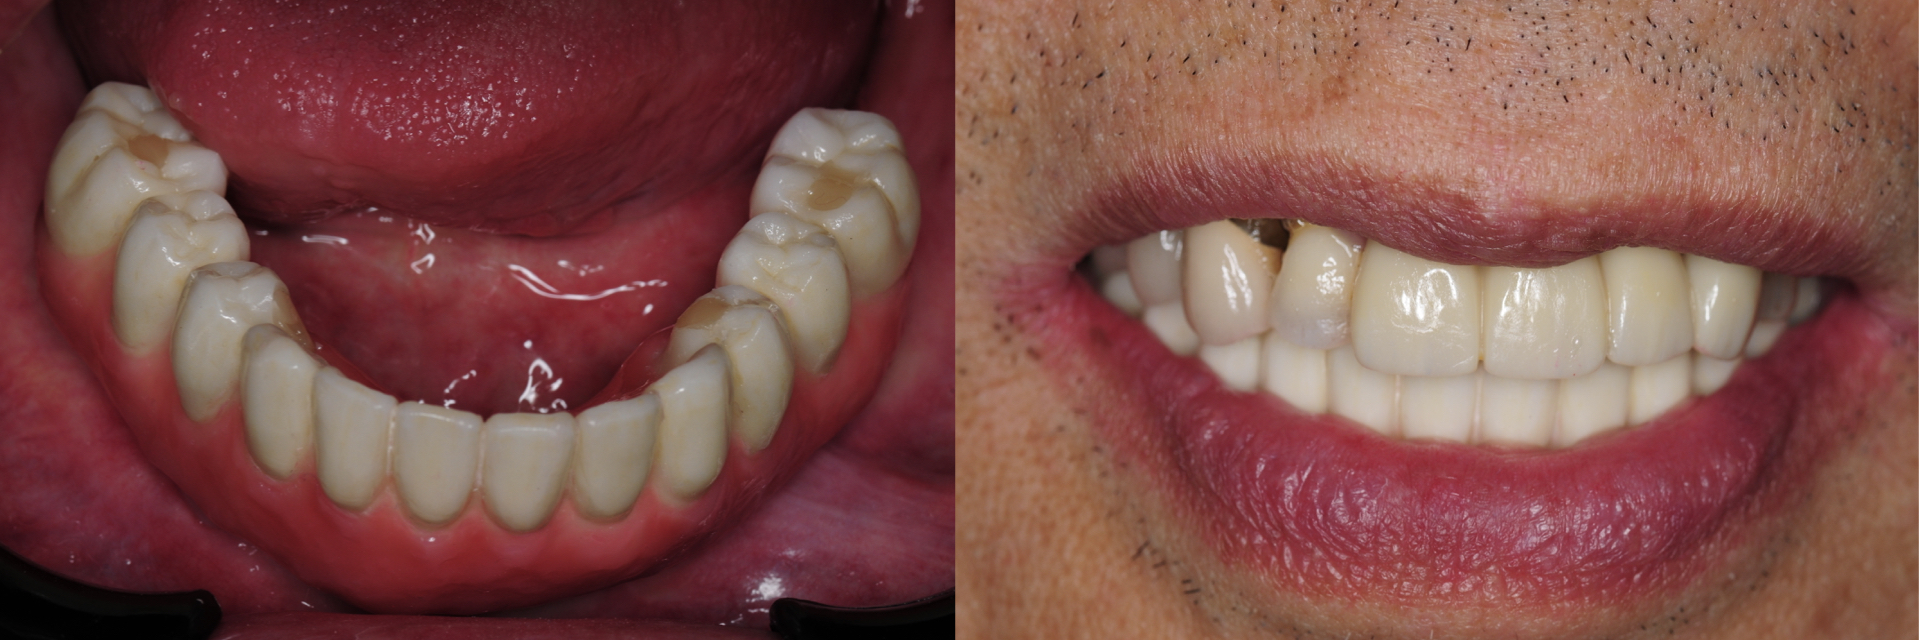 Digital-Workflow-for-Full-Arch-Implant-Supported-Teeth-Chrome-GuidedSmile-Kazemi-Oral-Surgery-Bethesda-Implant-Dentist.018